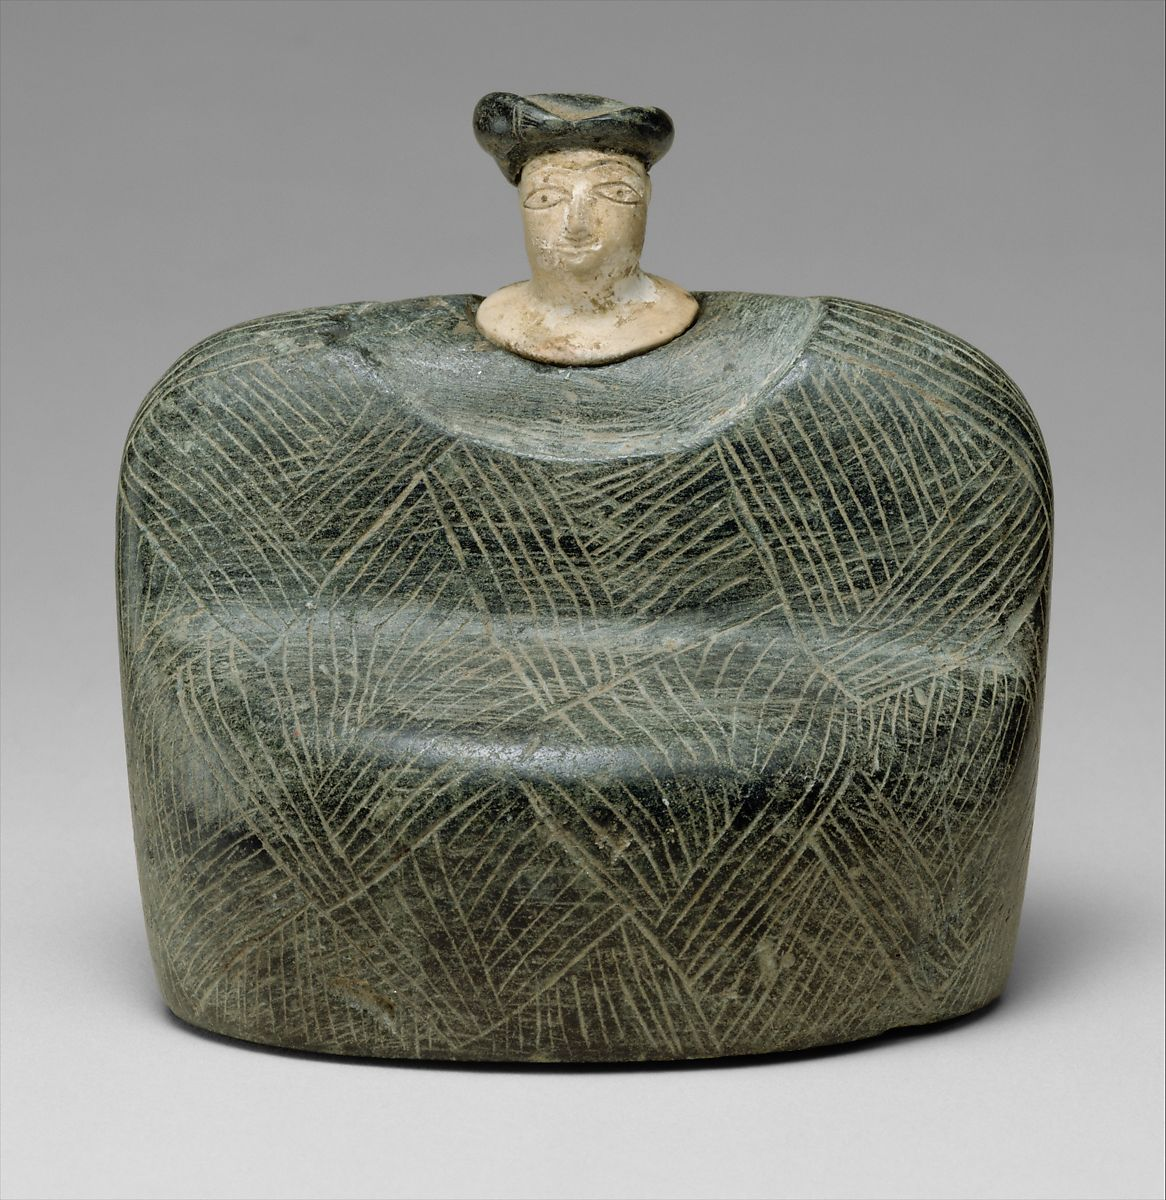 Seated female   Bactria-Margiana Archaeological Complex   Bronze Age   The Met